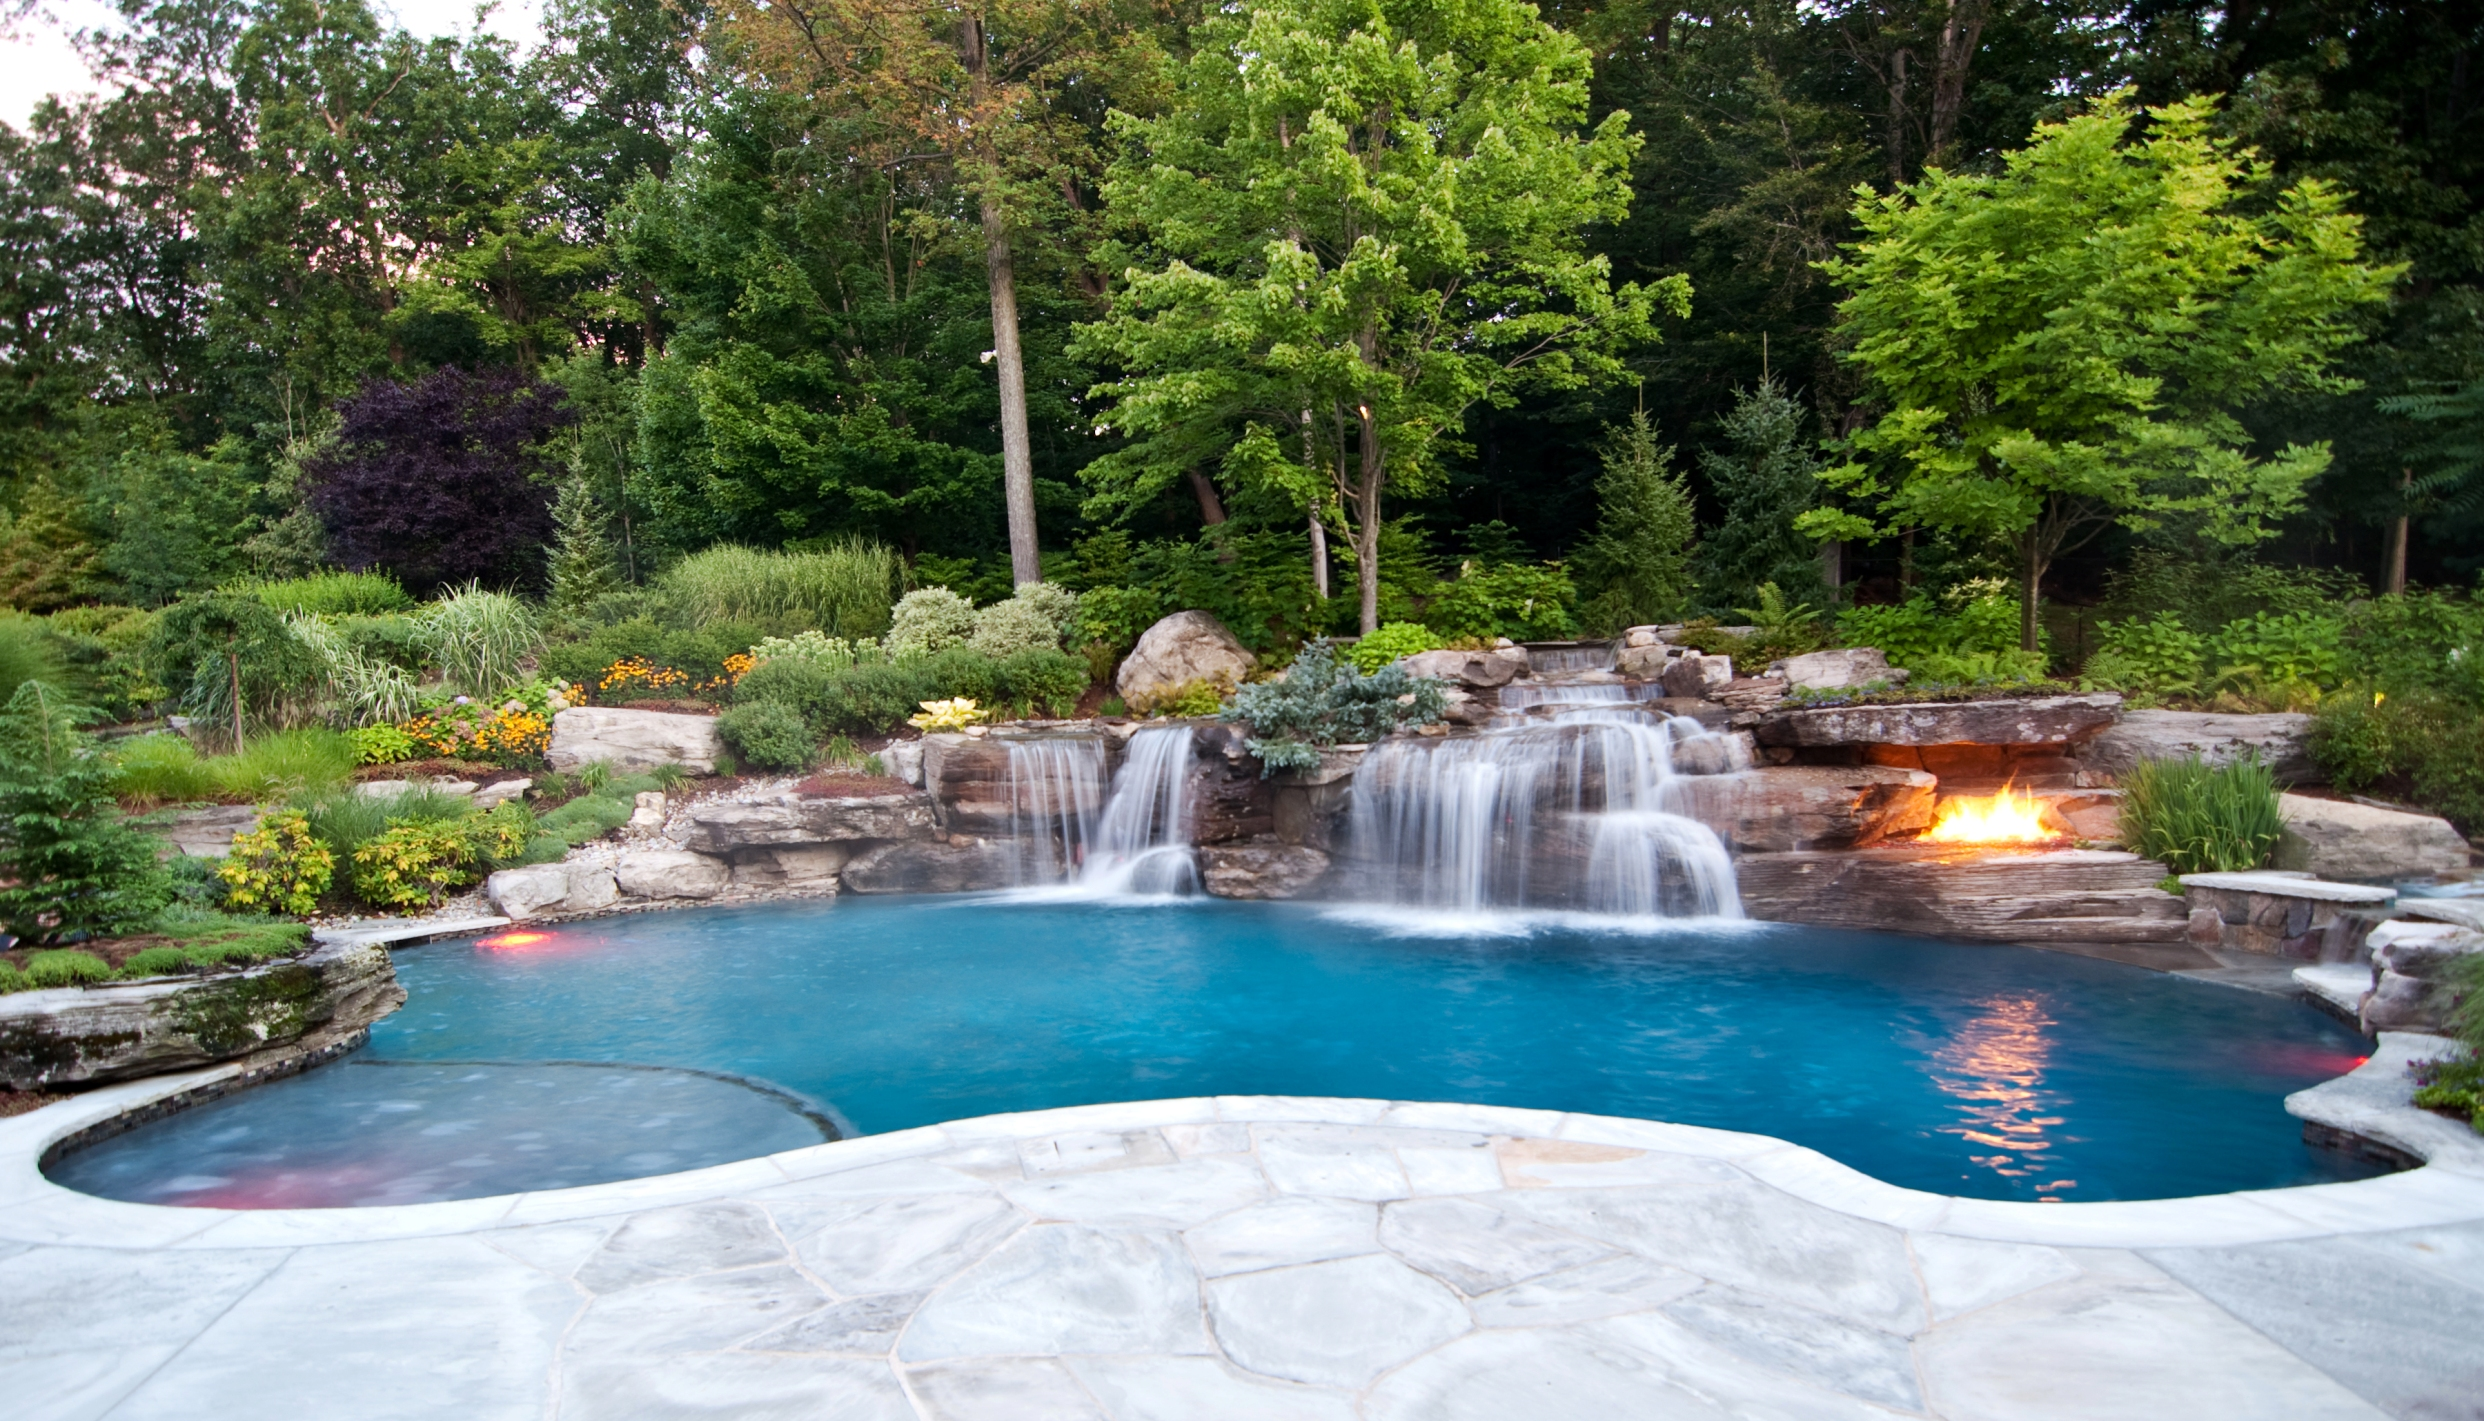 New pool construction northern virginia maryland and for Swimming pool ideas for backyard